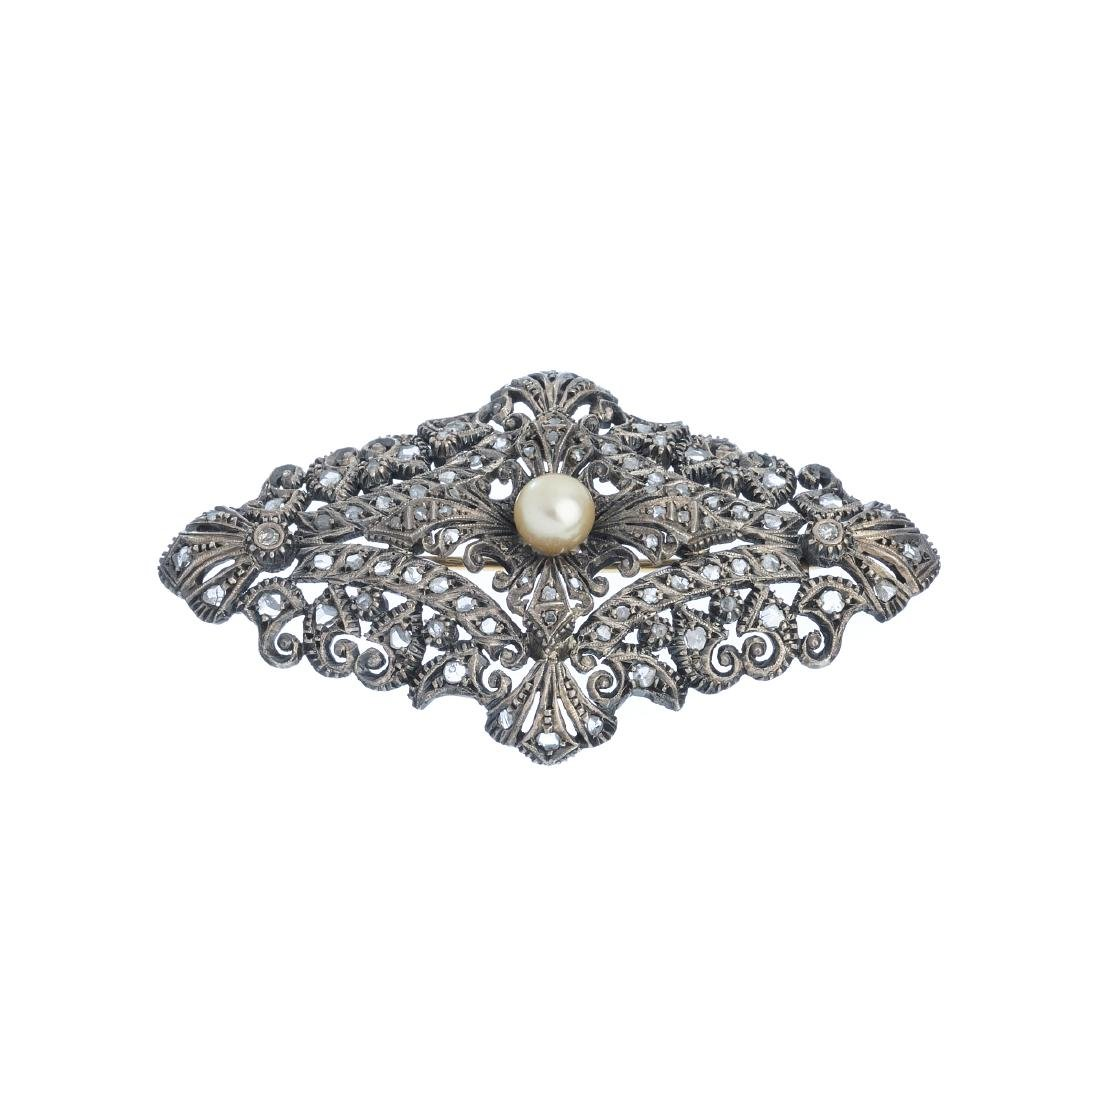 Gold and silver brooch with diamonds and pearls